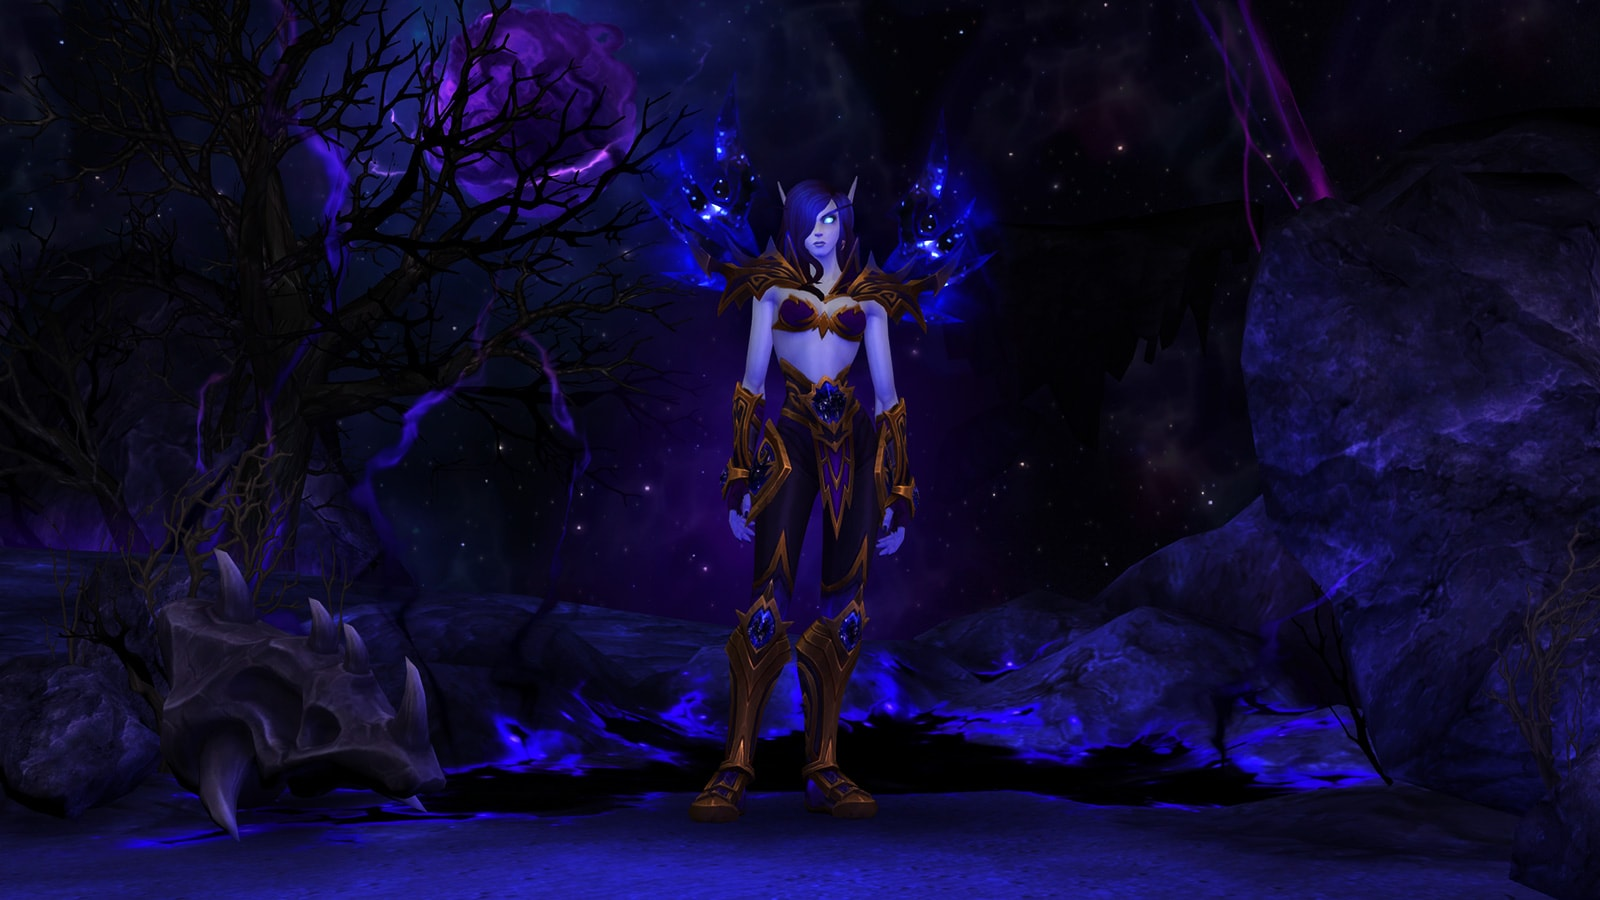 Void Elf Heritage Armor Boost : World of warcraft (wow) blood elf heritage armor boost we will do for you the blood elf heritage armor questline.